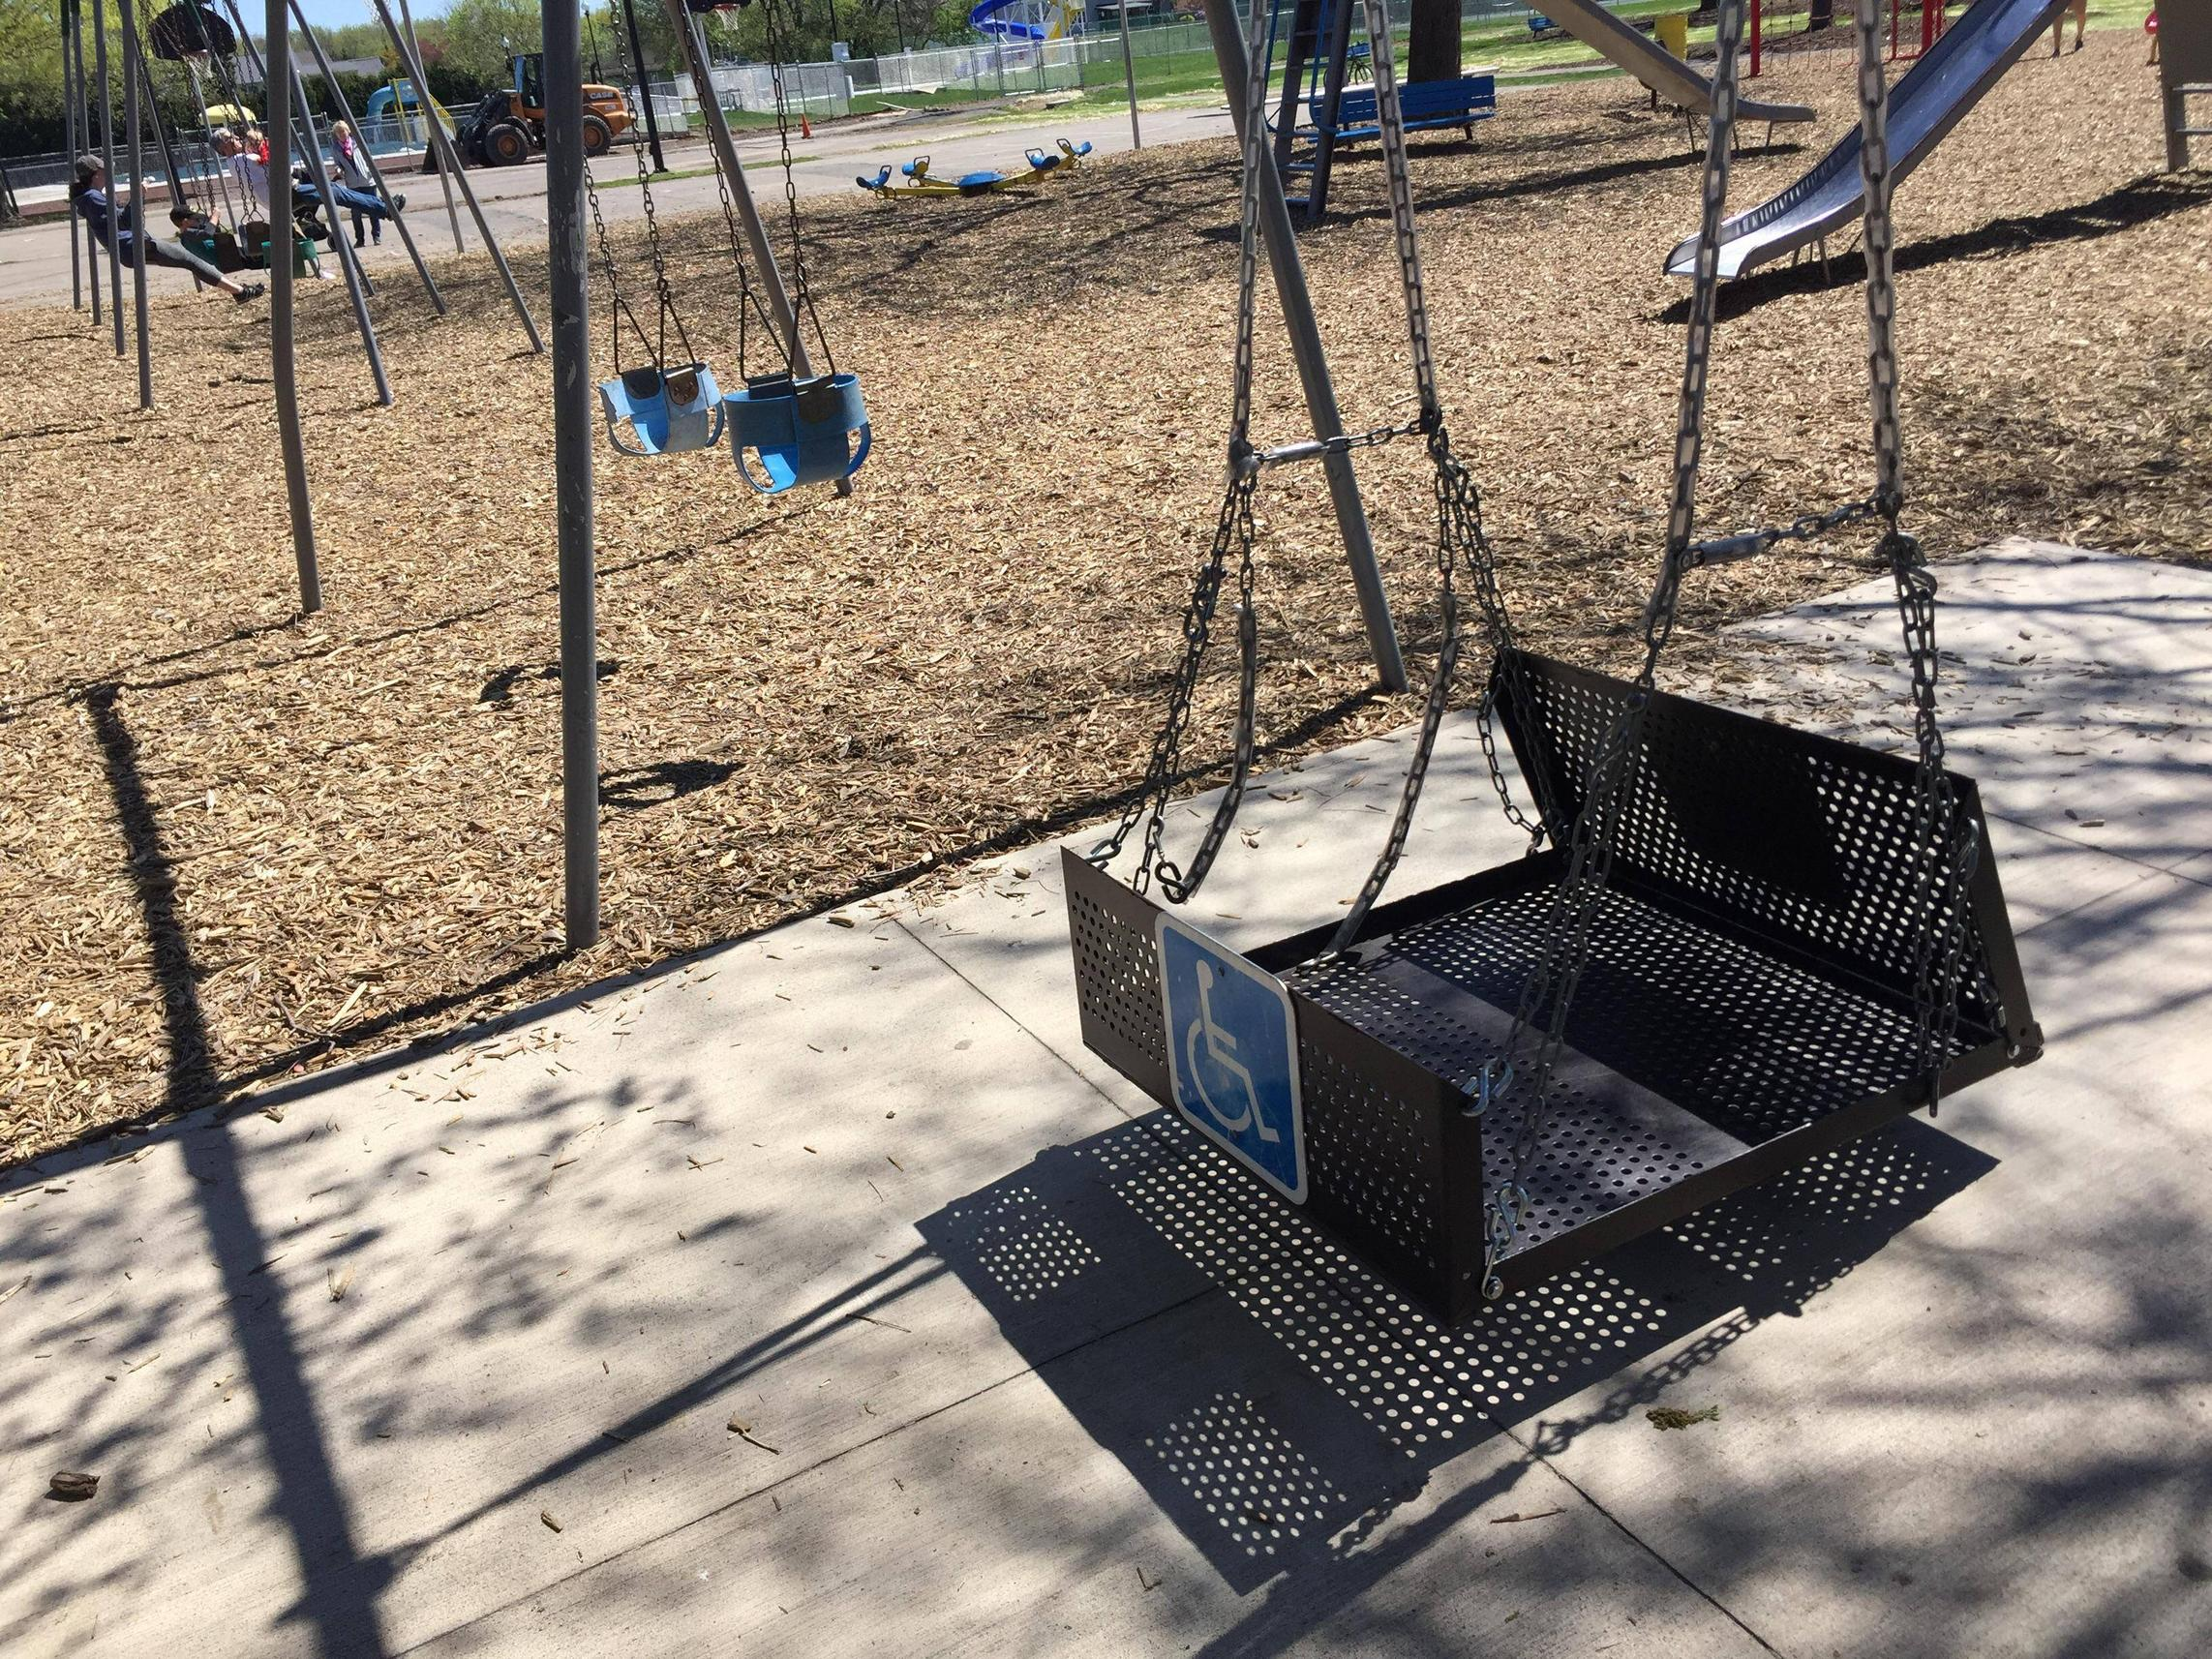 This playground has a swing for wheelchairs - clumsy182 - bit.ly2BPPKFc